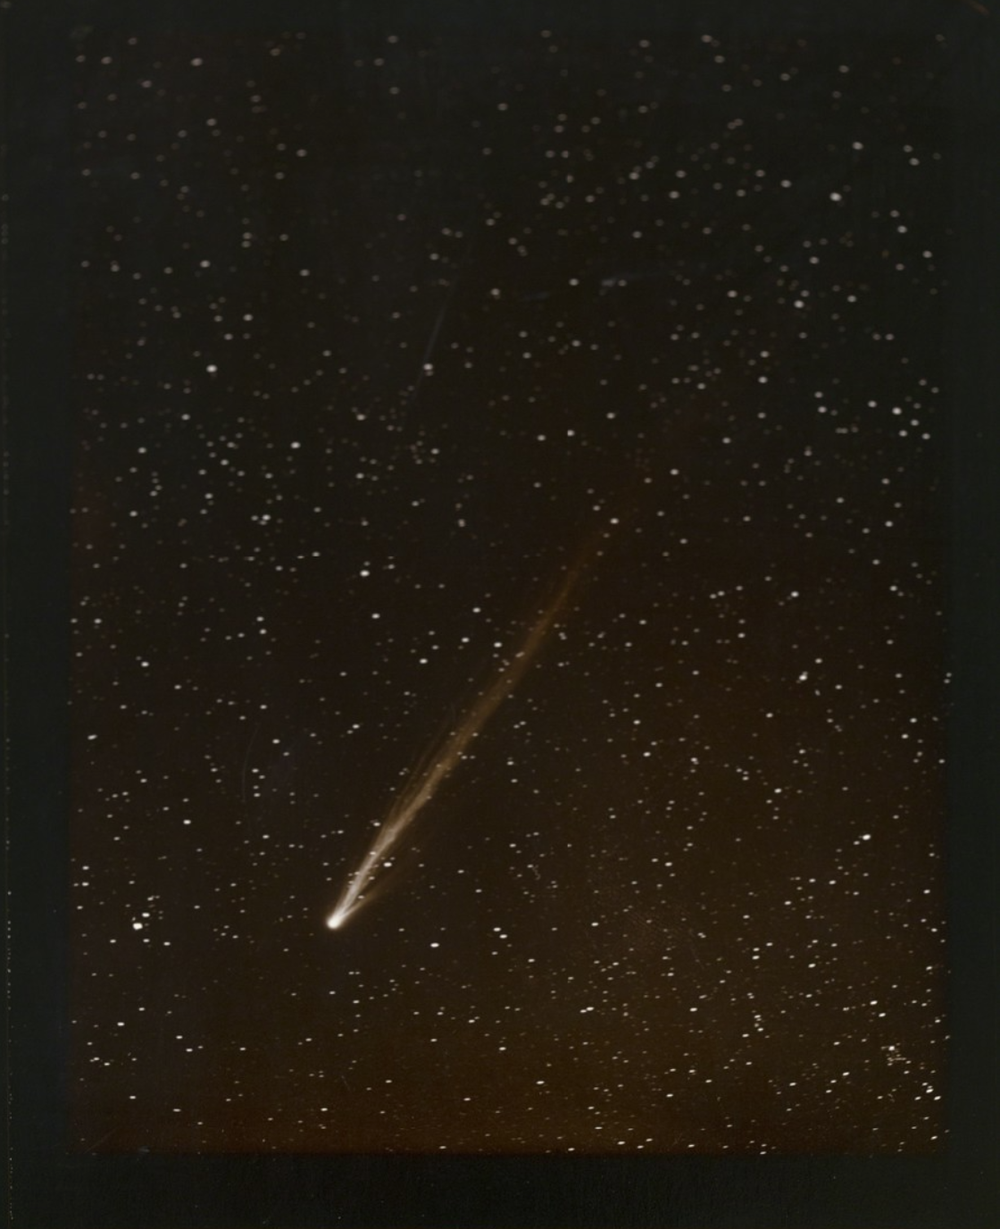 Morehouse Comet, 1908, Linda Connor, 1996, Gold toned printing out paper from original glass plate negative, 12.5 x 10.5 inches. On view at Booth 444.